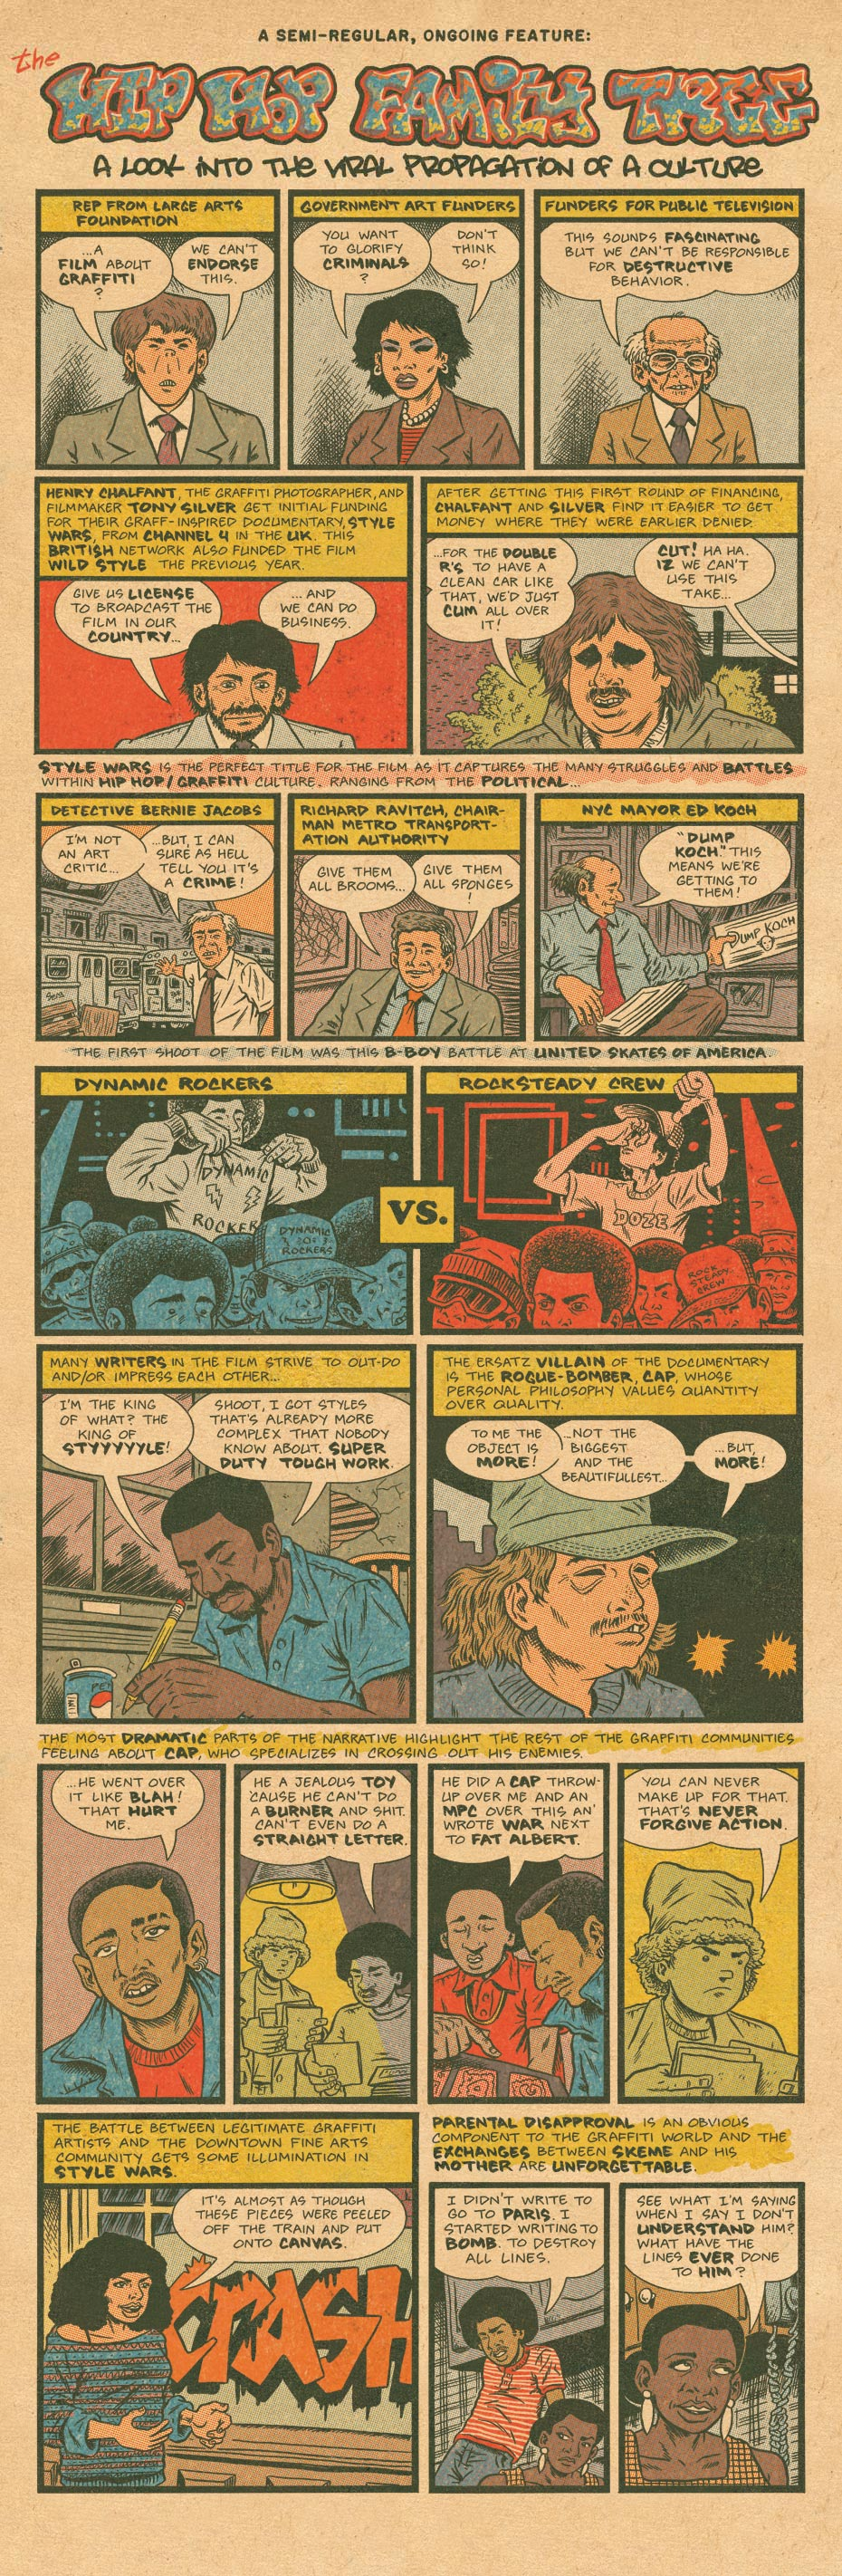 amedia.boingboing.net_wp_content_uploads_2014_03_hip_hop_strip_97.jpg